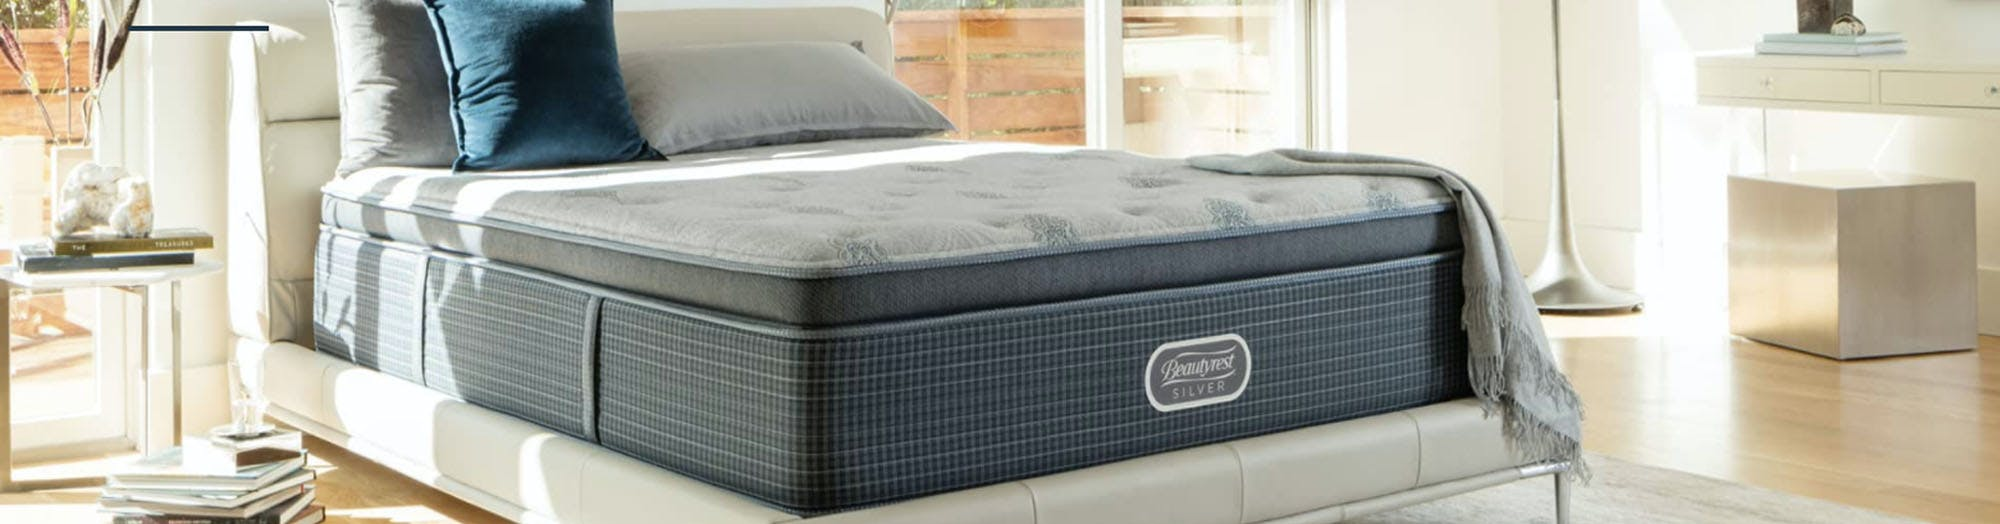 shop for simmons beautyrest mattresses in cincinnati and dayton oh